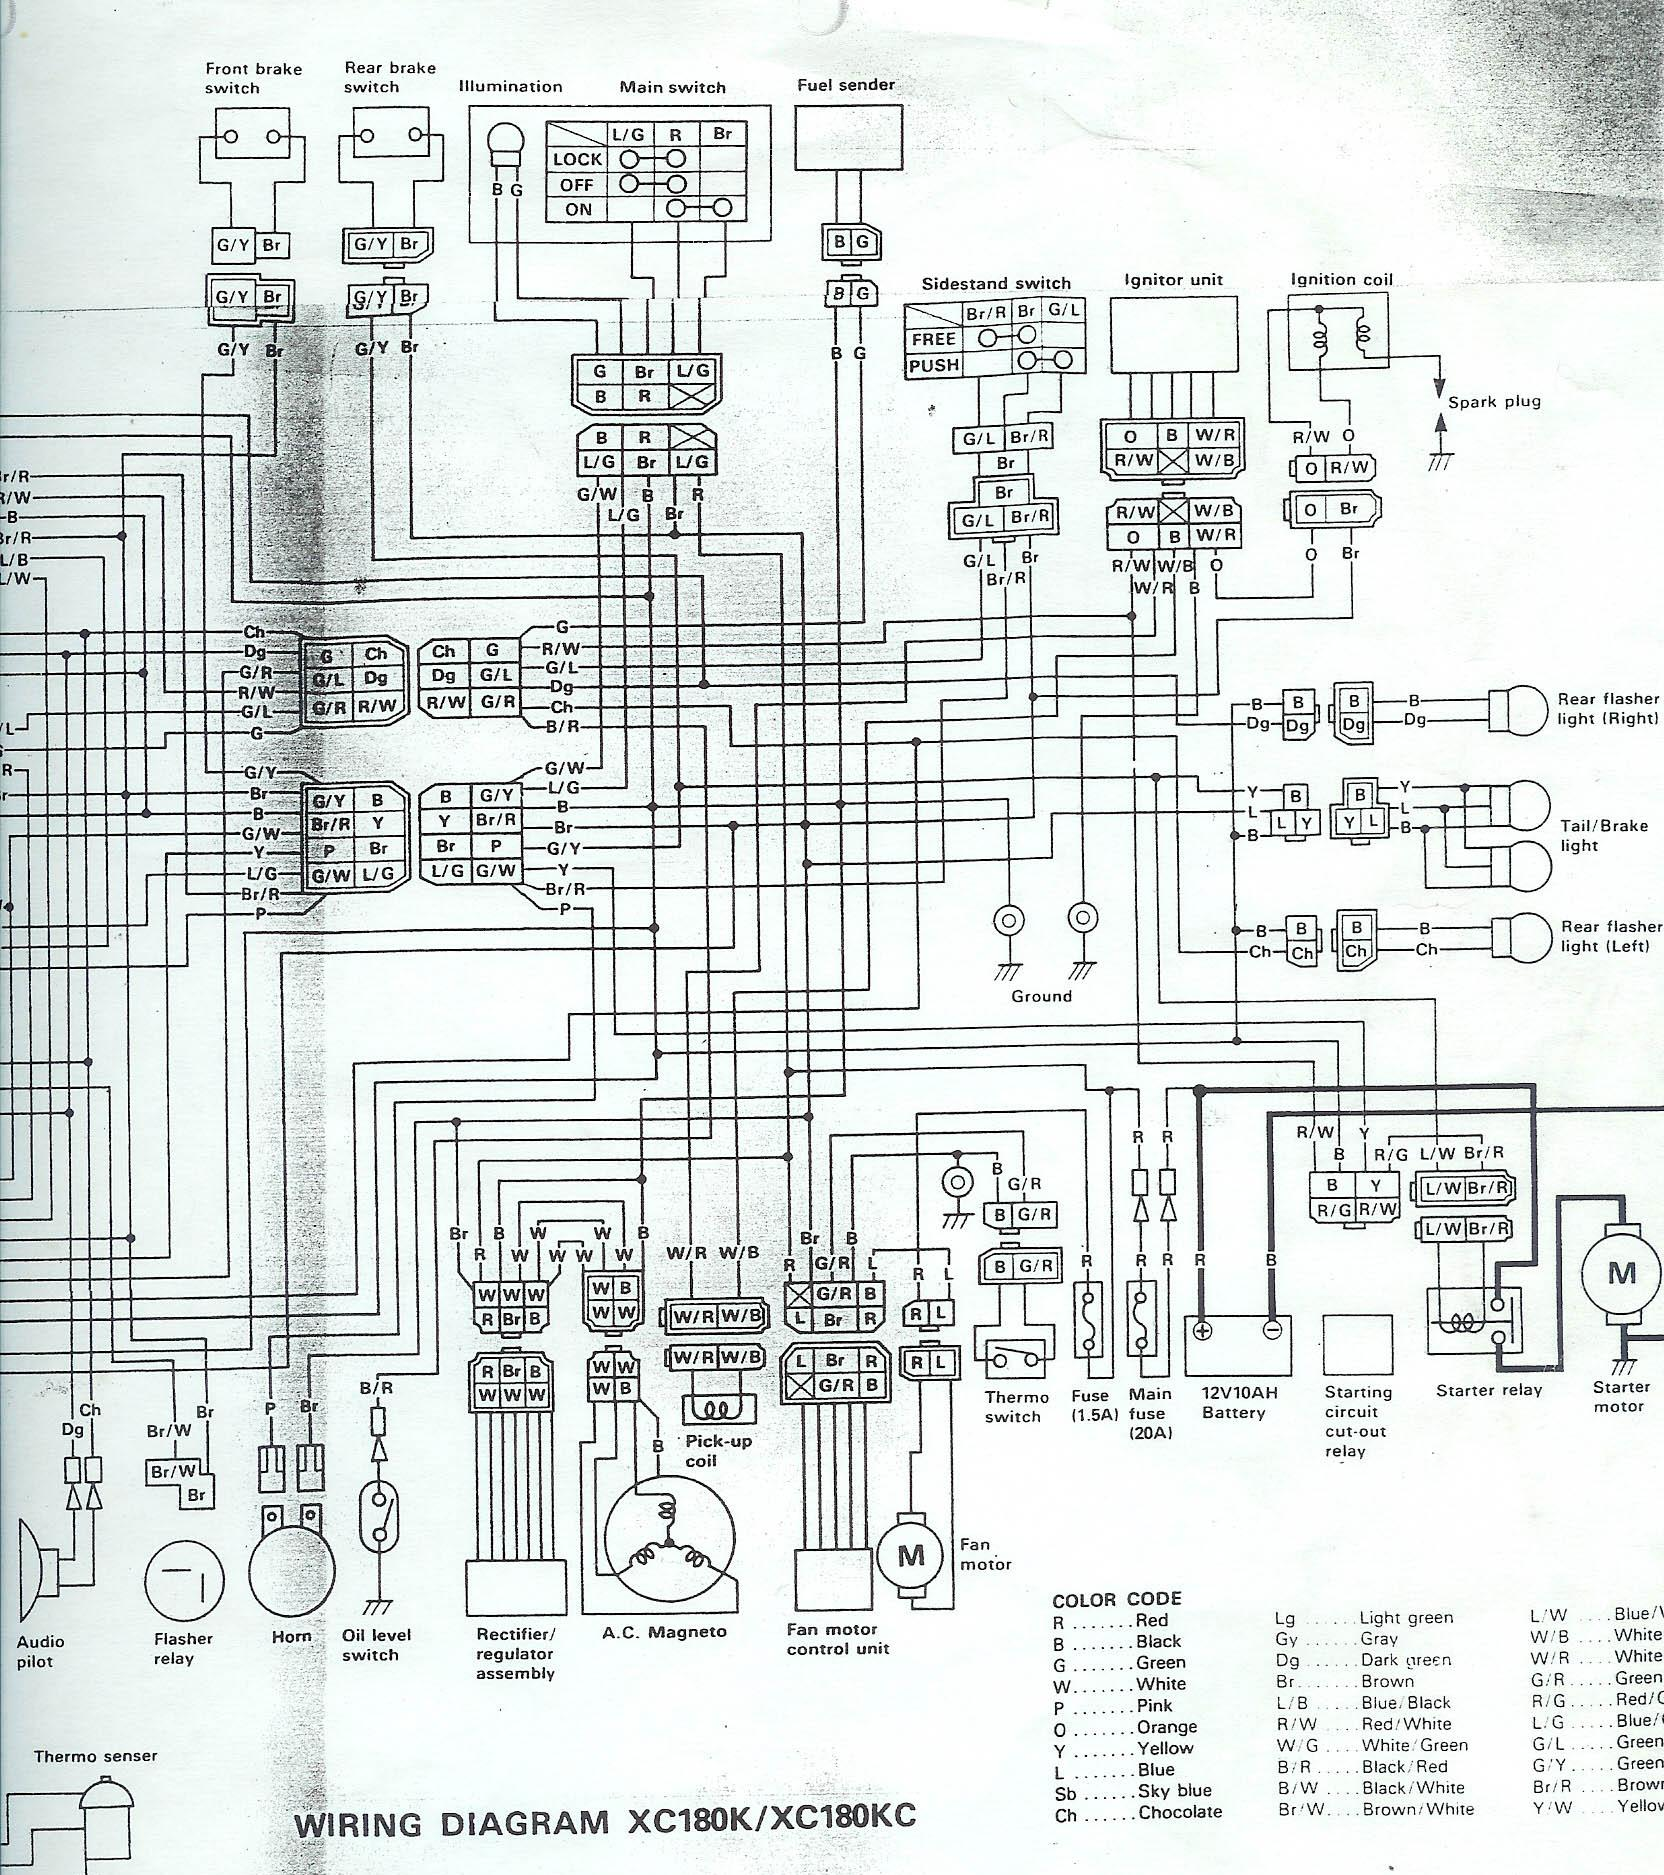 XC180_wiring_diagram_2 yamaha aerox wiring diagram efcaviation com t444e wiring diagram at bakdesigns.co